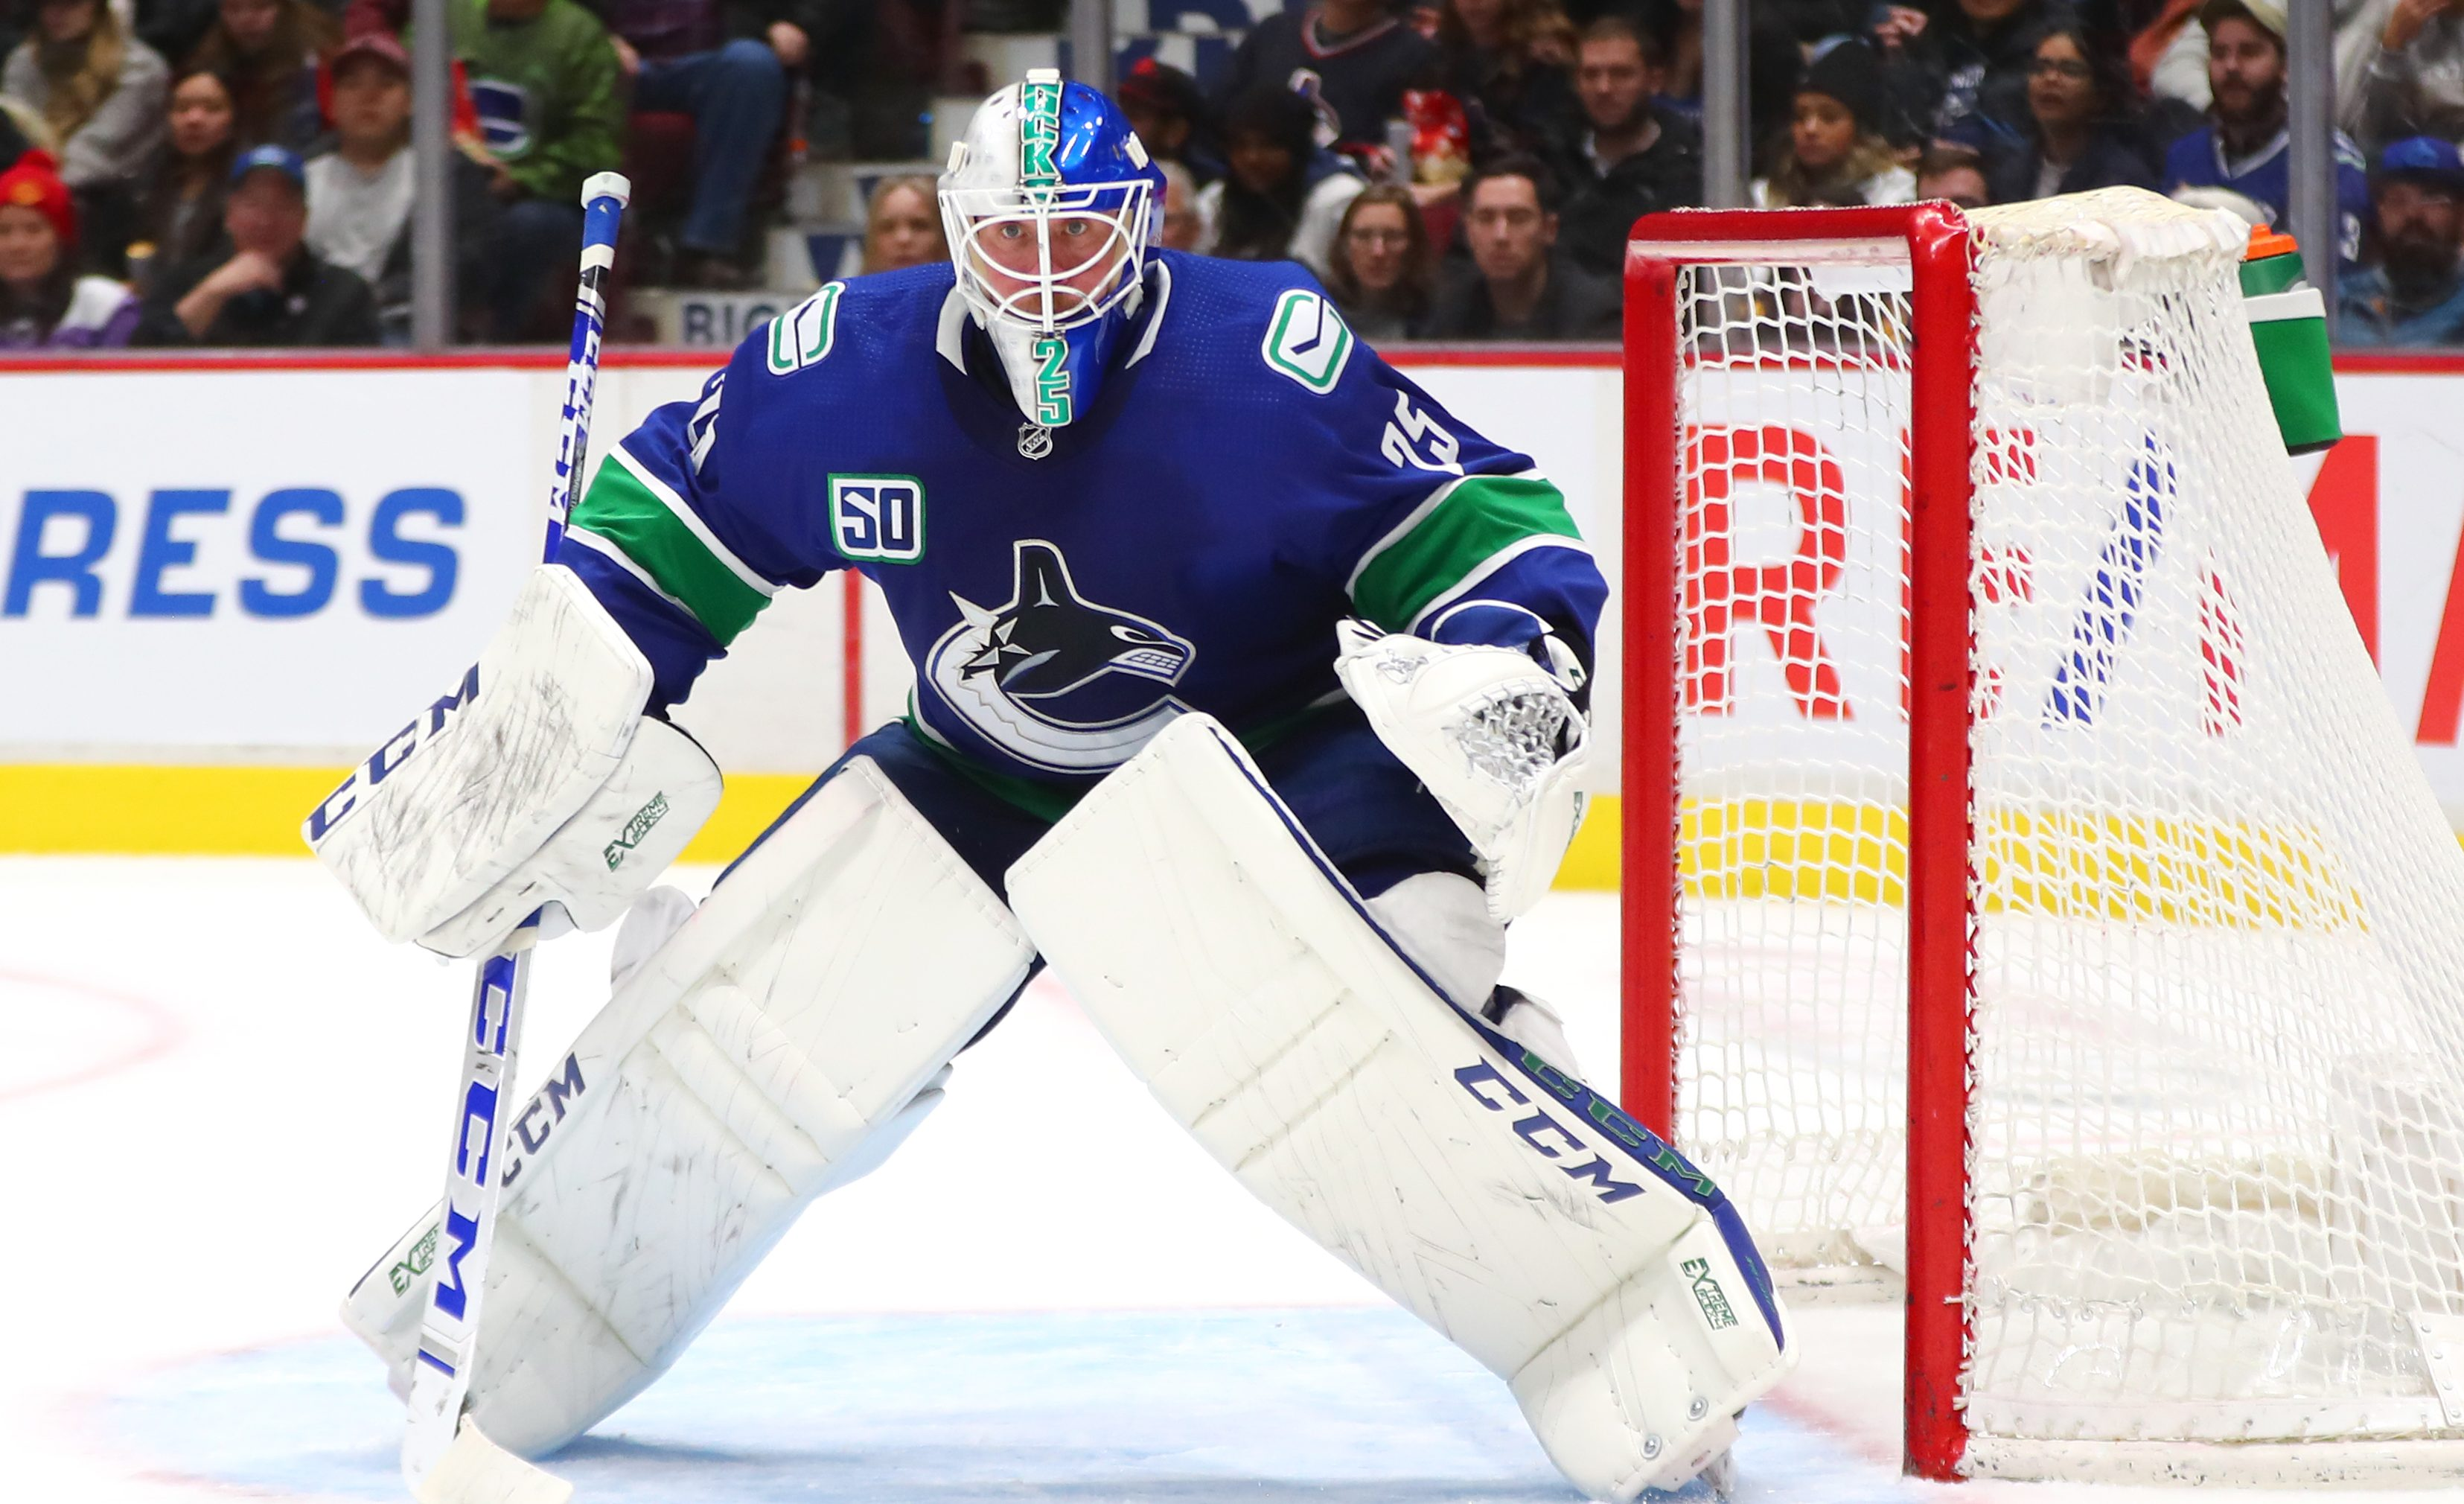 Jacob Markstrom S Absence Shows How Important He Is To Canucks